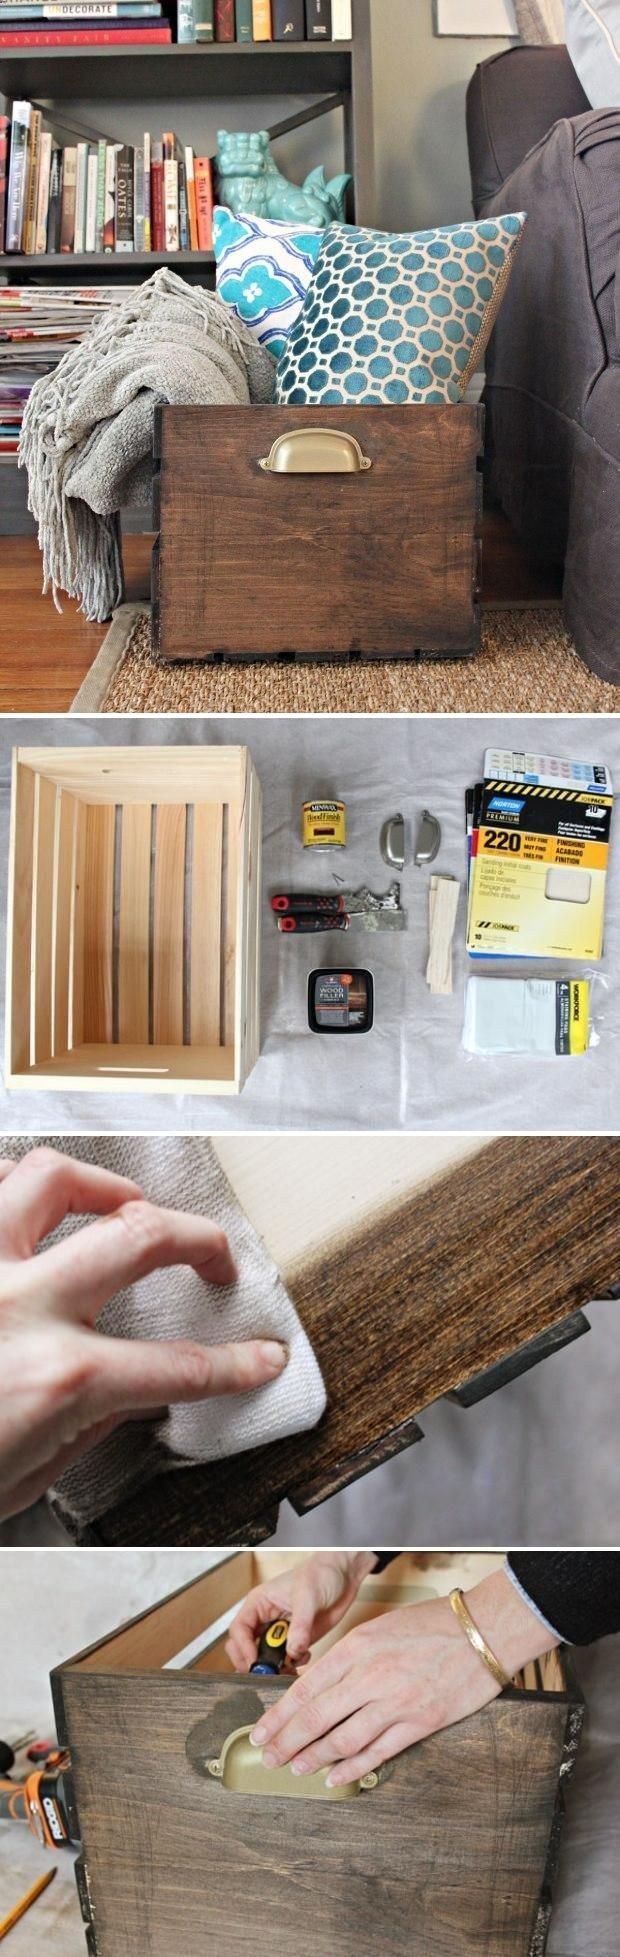 25 best ideas about apple crates on pinterest crate. Black Bedroom Furniture Sets. Home Design Ideas